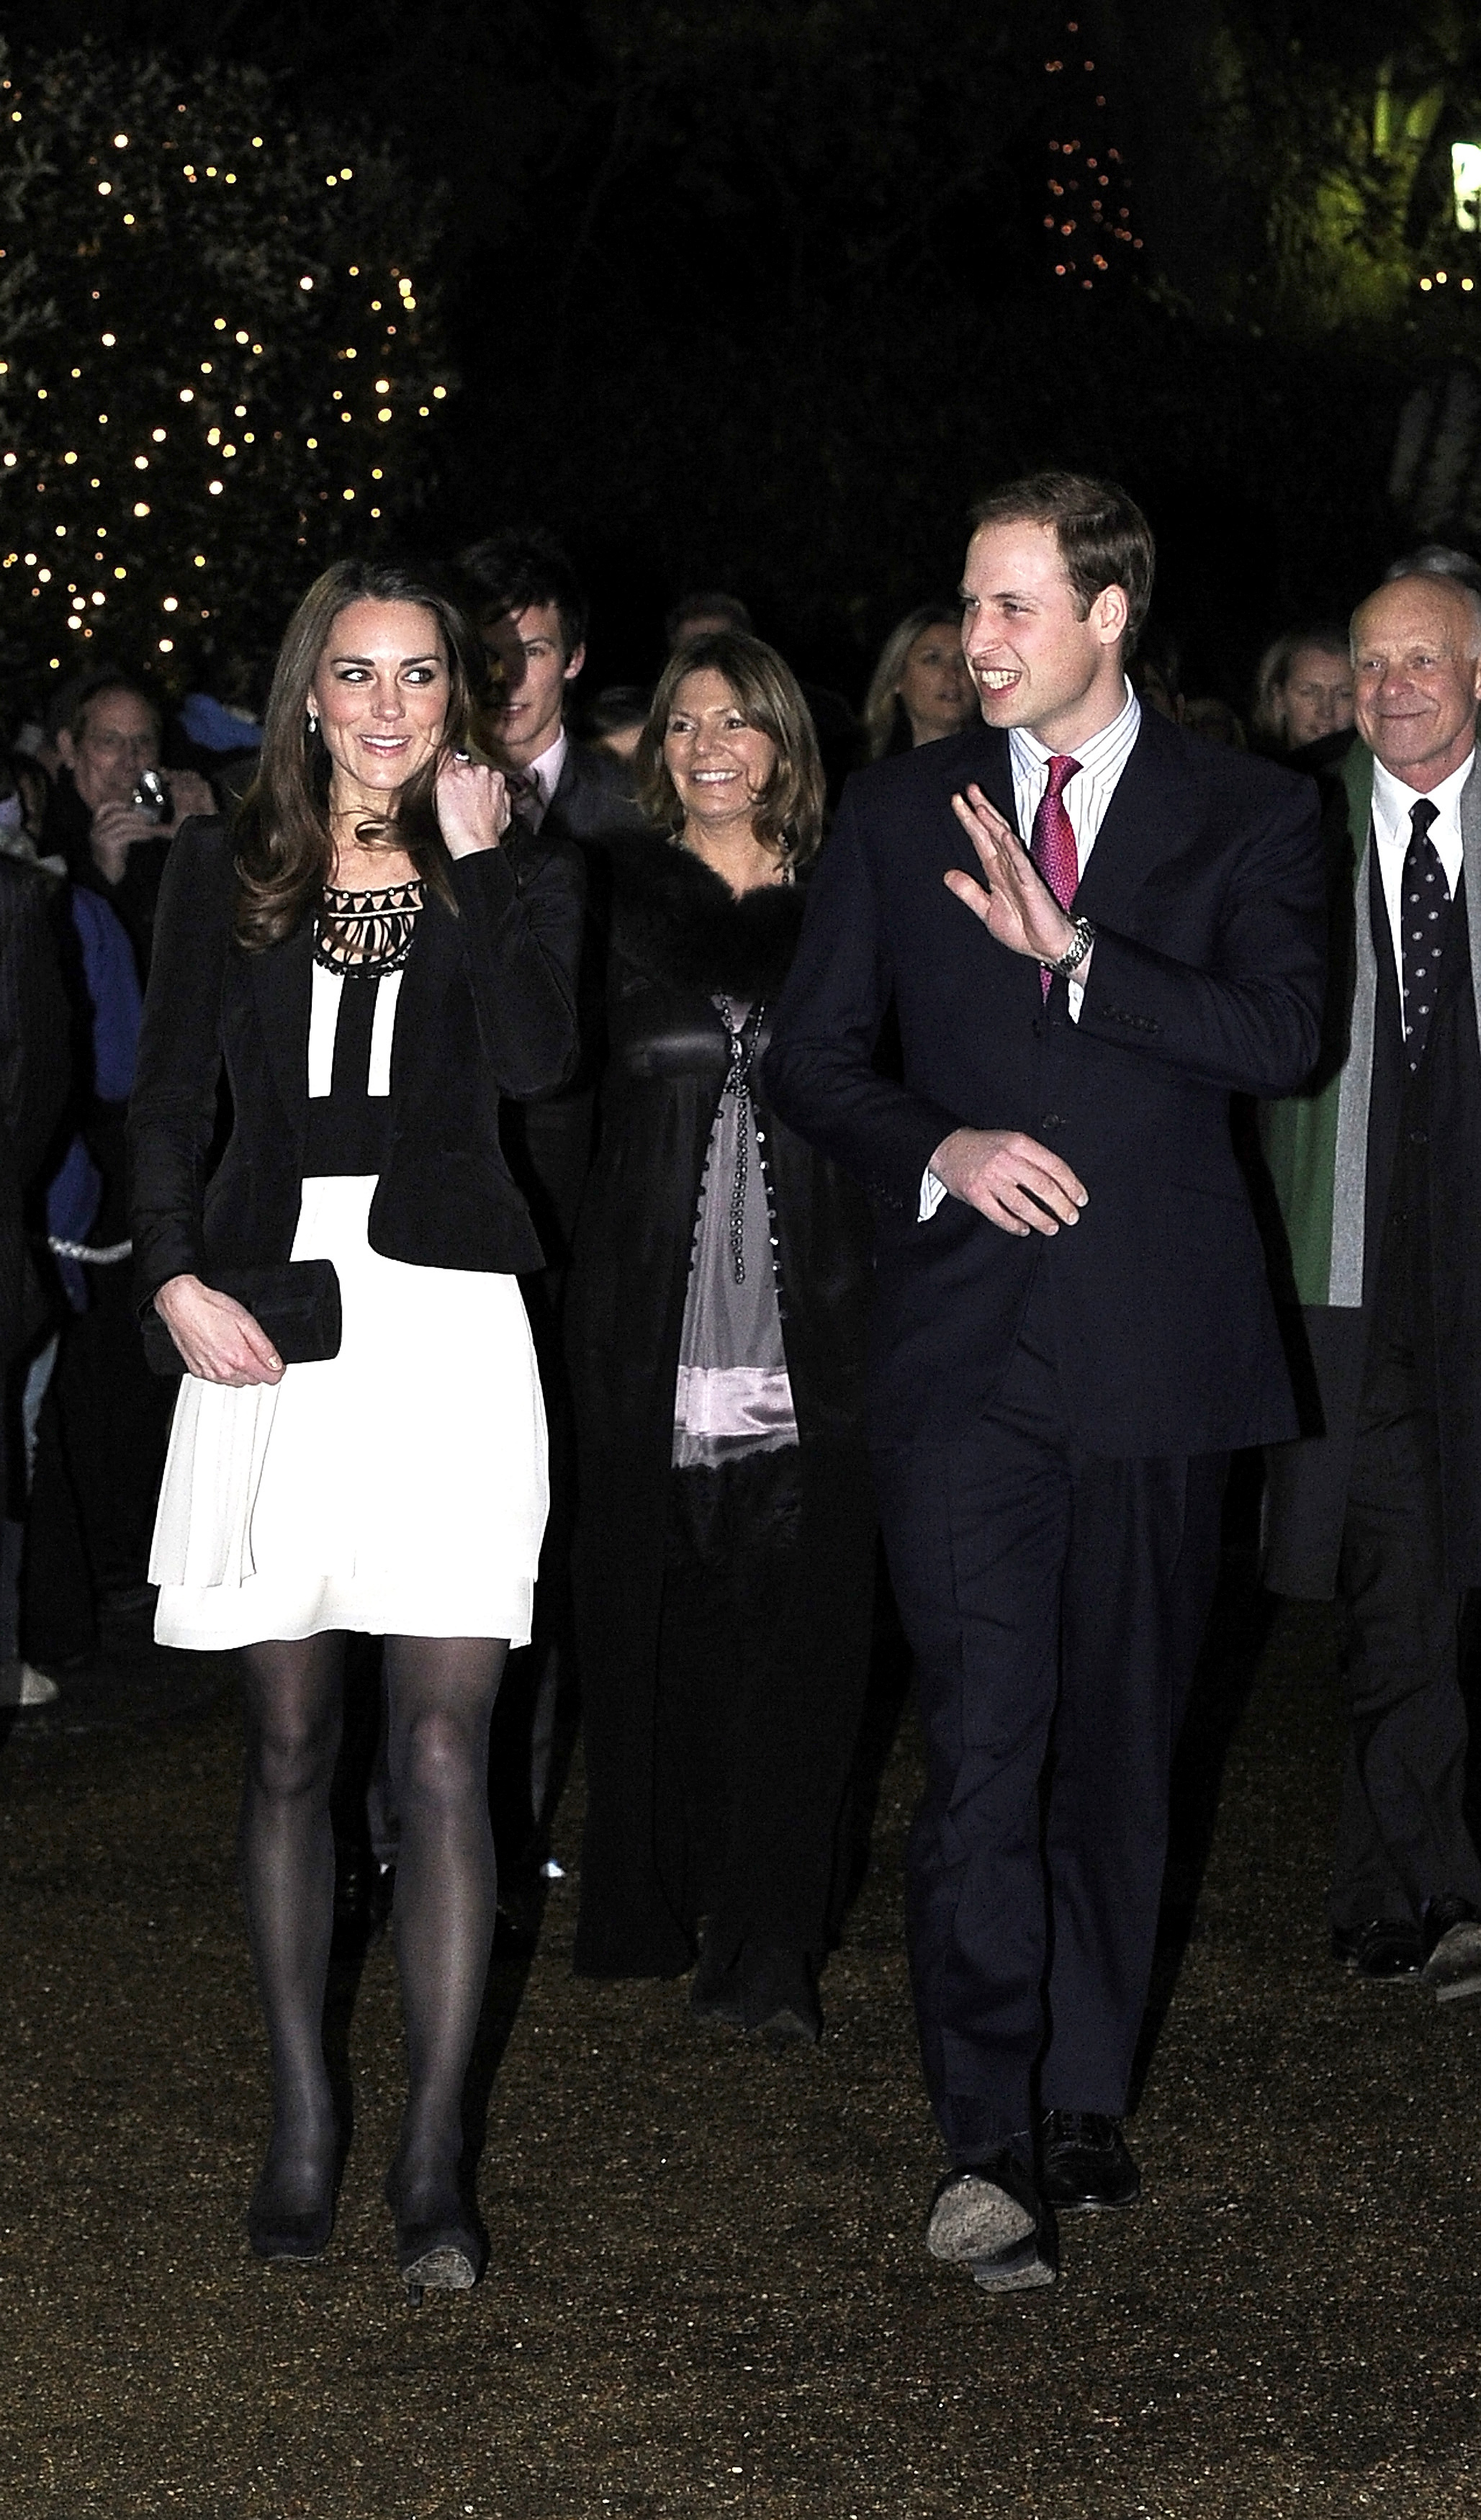 <strong>Fashion in Black and White</strong>                                   For her first public outing post-engagement — a visit to the Thursford Collection in Norfolk — Middleton steered clear of any potential controversy in a simple black and white dress worn under a black blazer. Dec. 18, 2010